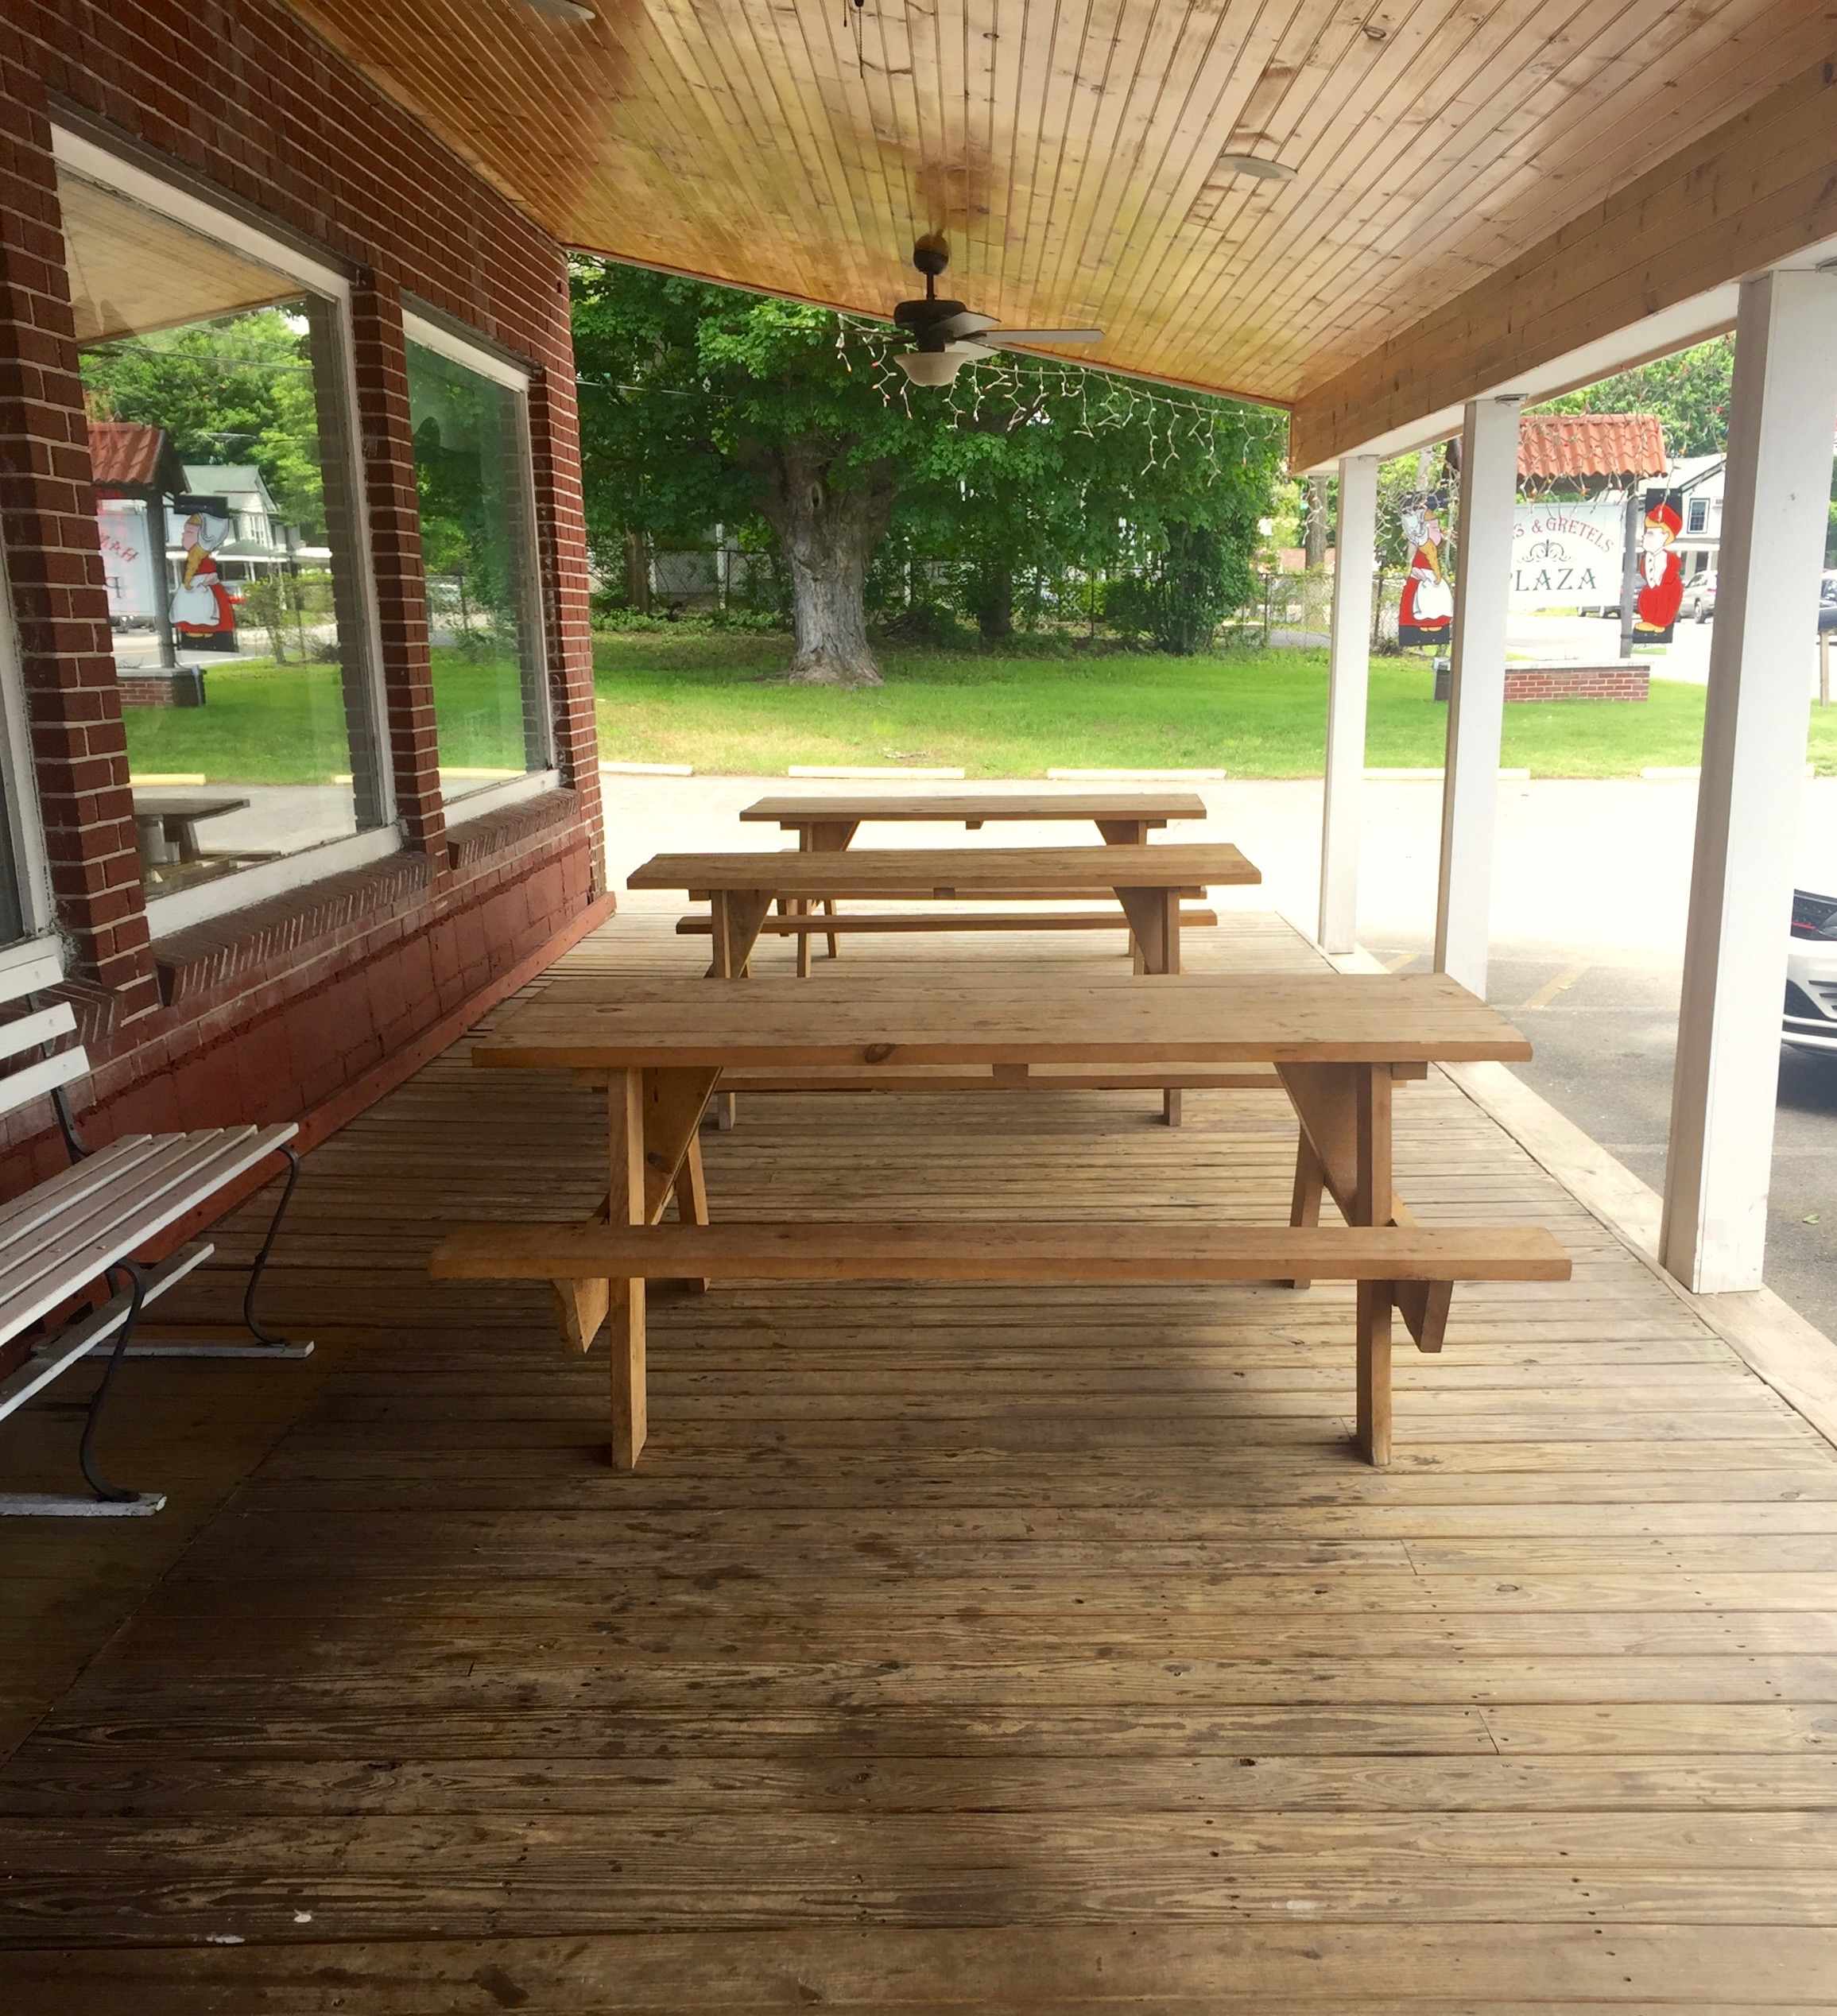 Angel's Cafe picnic tables